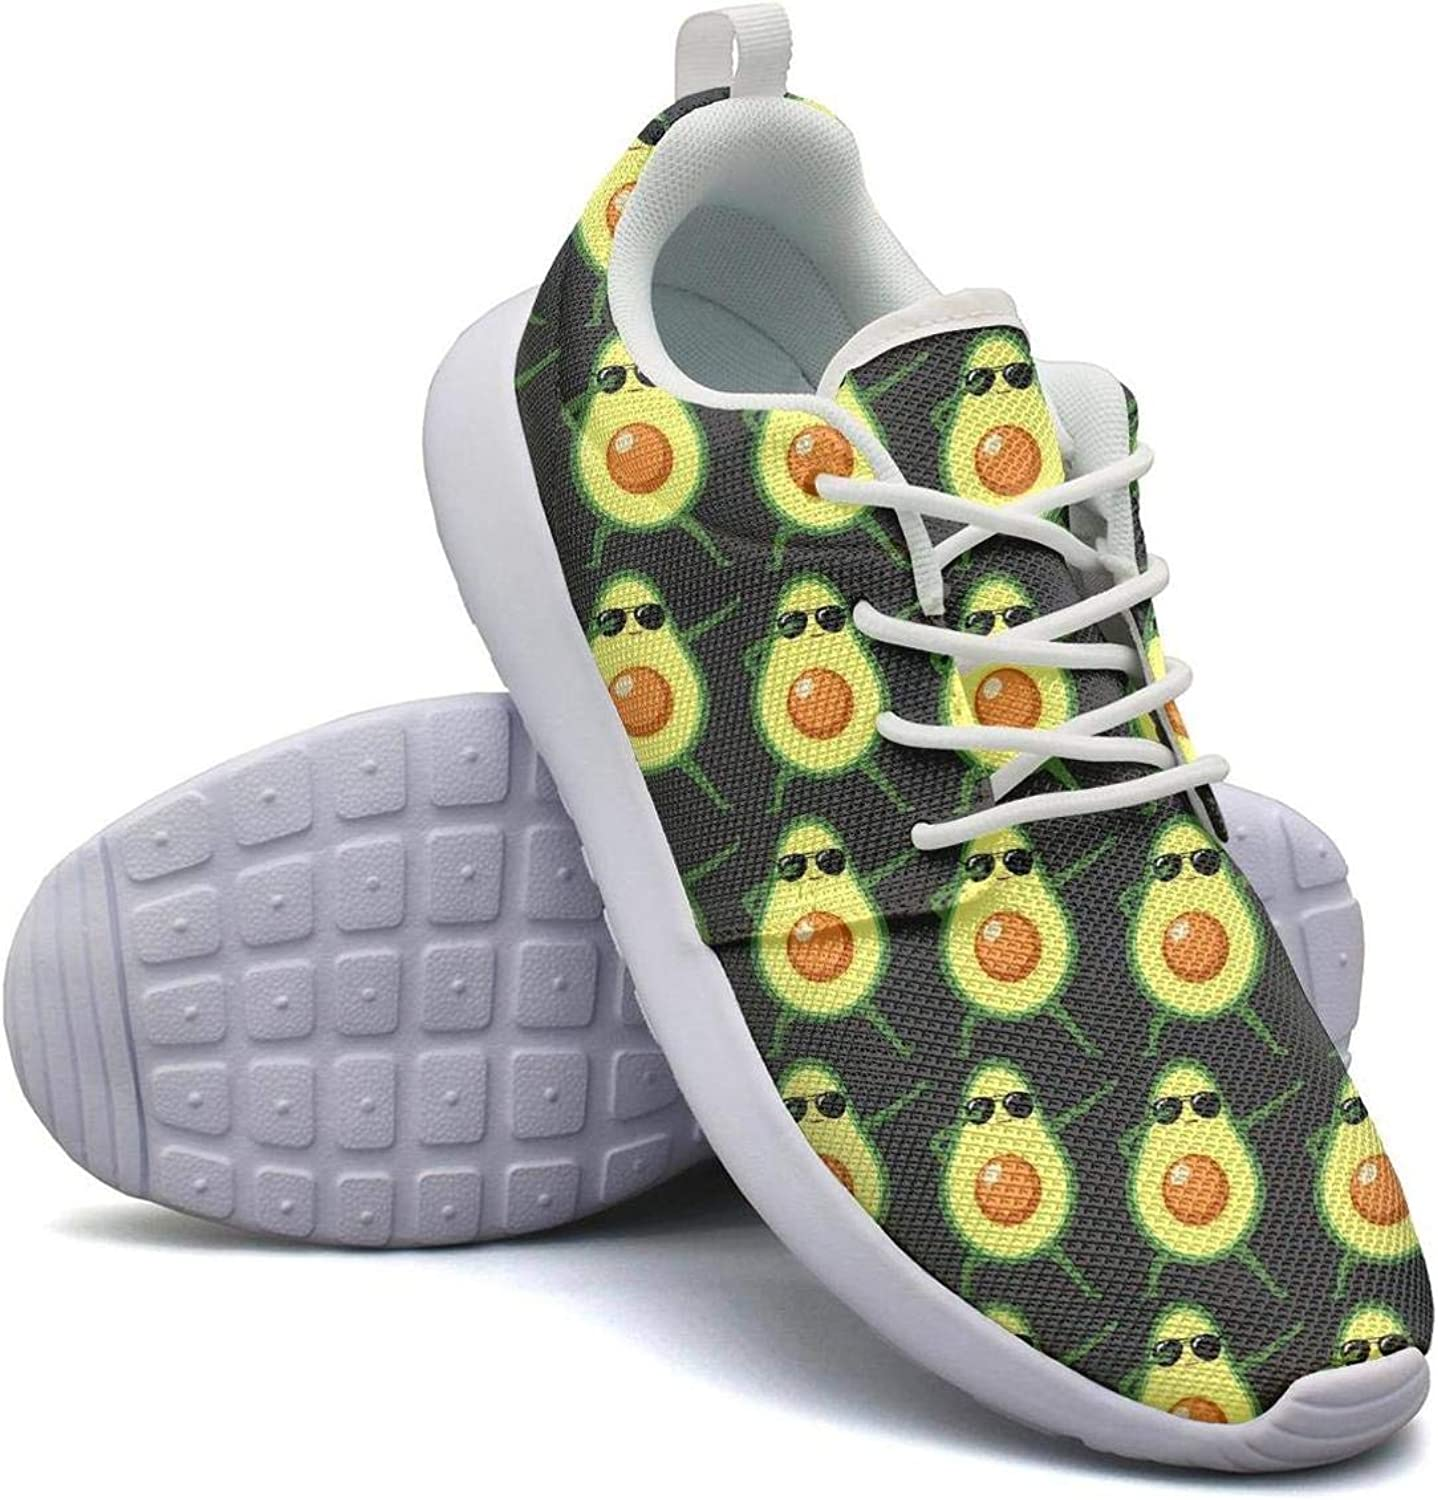 FEWW11 Women Cute Lightweight shoes Sneakers Yellow Pizza Life Cozy Gym Lace-Up